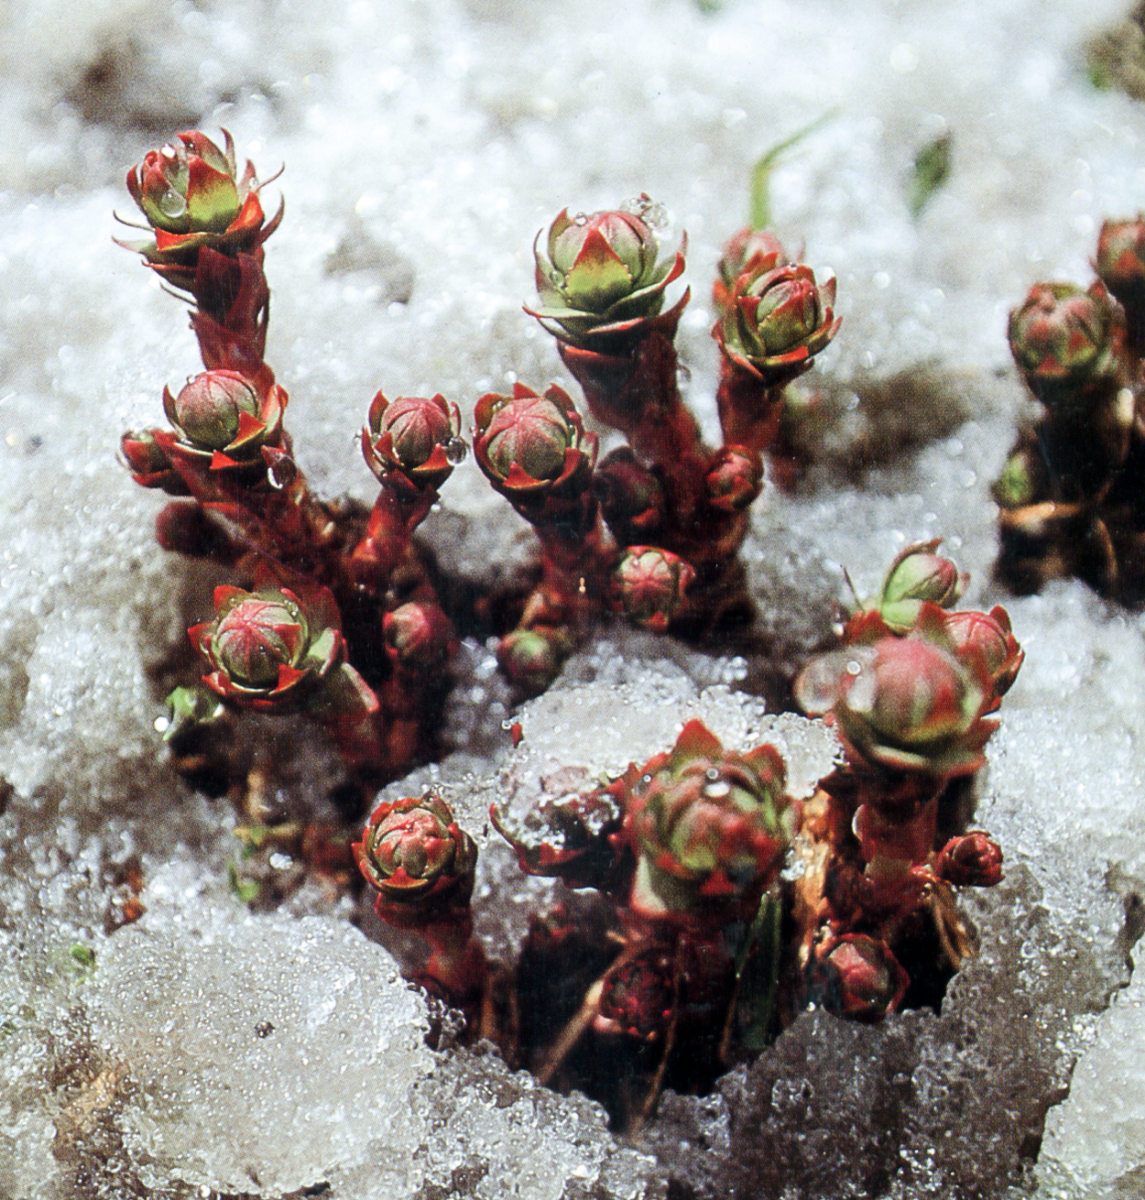 Rhodiola In Snow